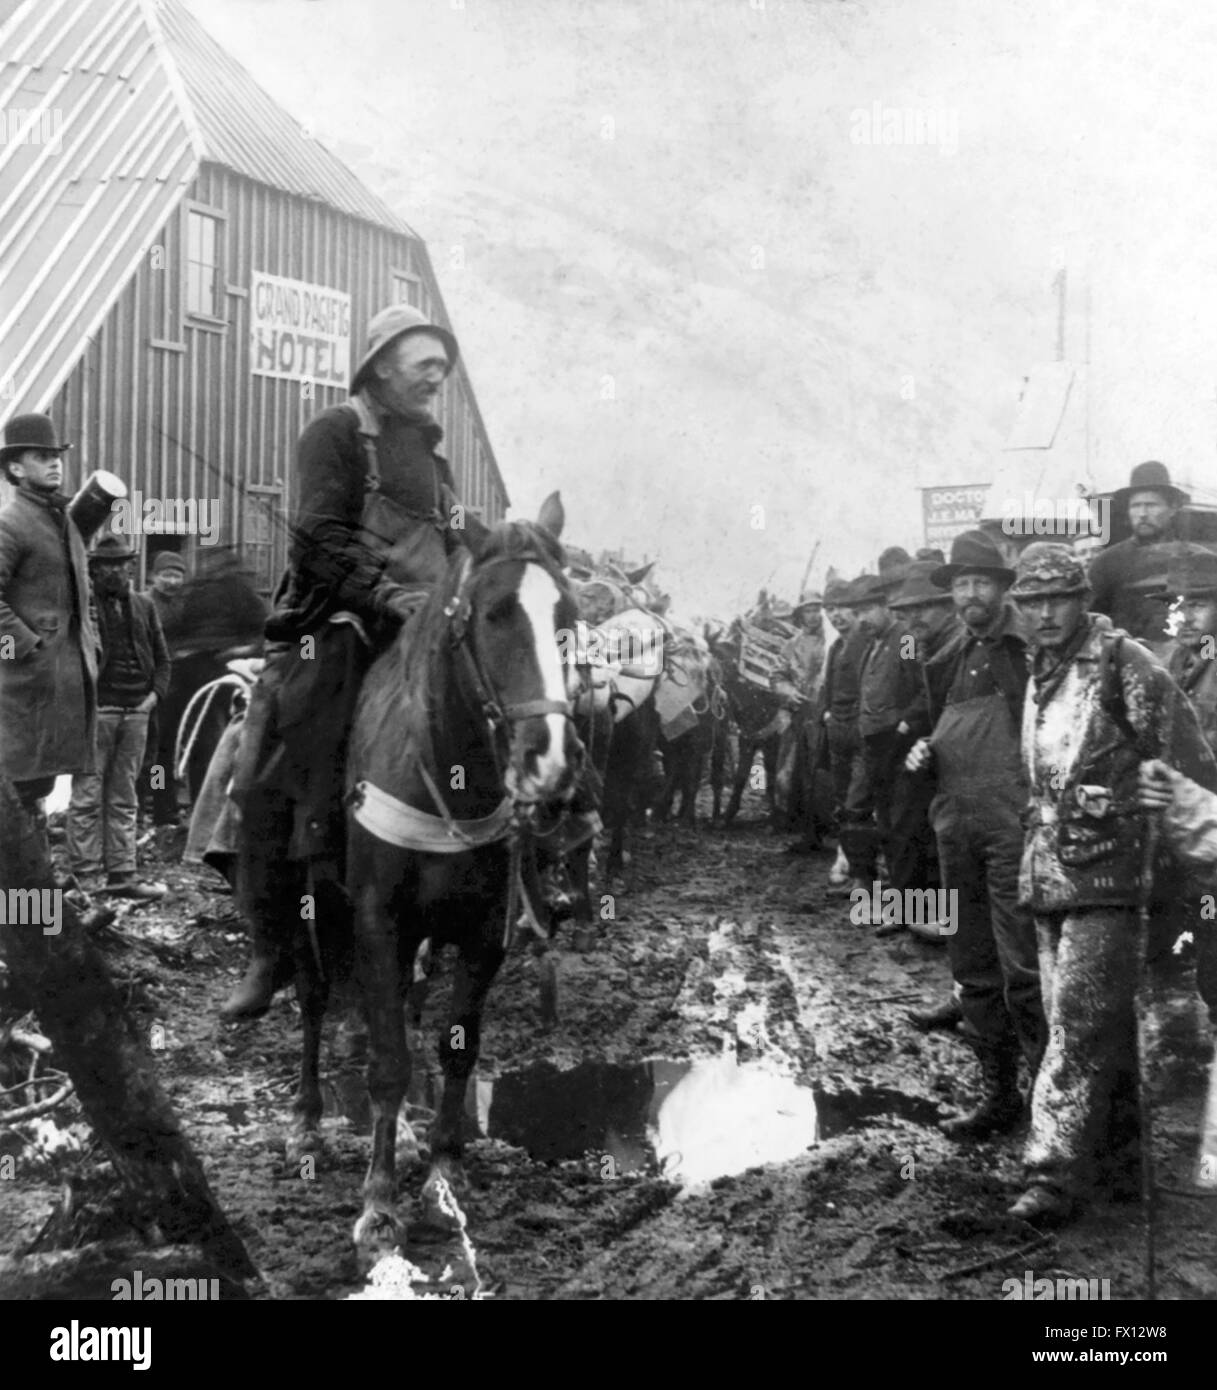 Klondike Gold Rush. Gold prospectors on the way to the Klondike, in front of the Grand Pacific Hotel at Sheep Camp, - Stock Image